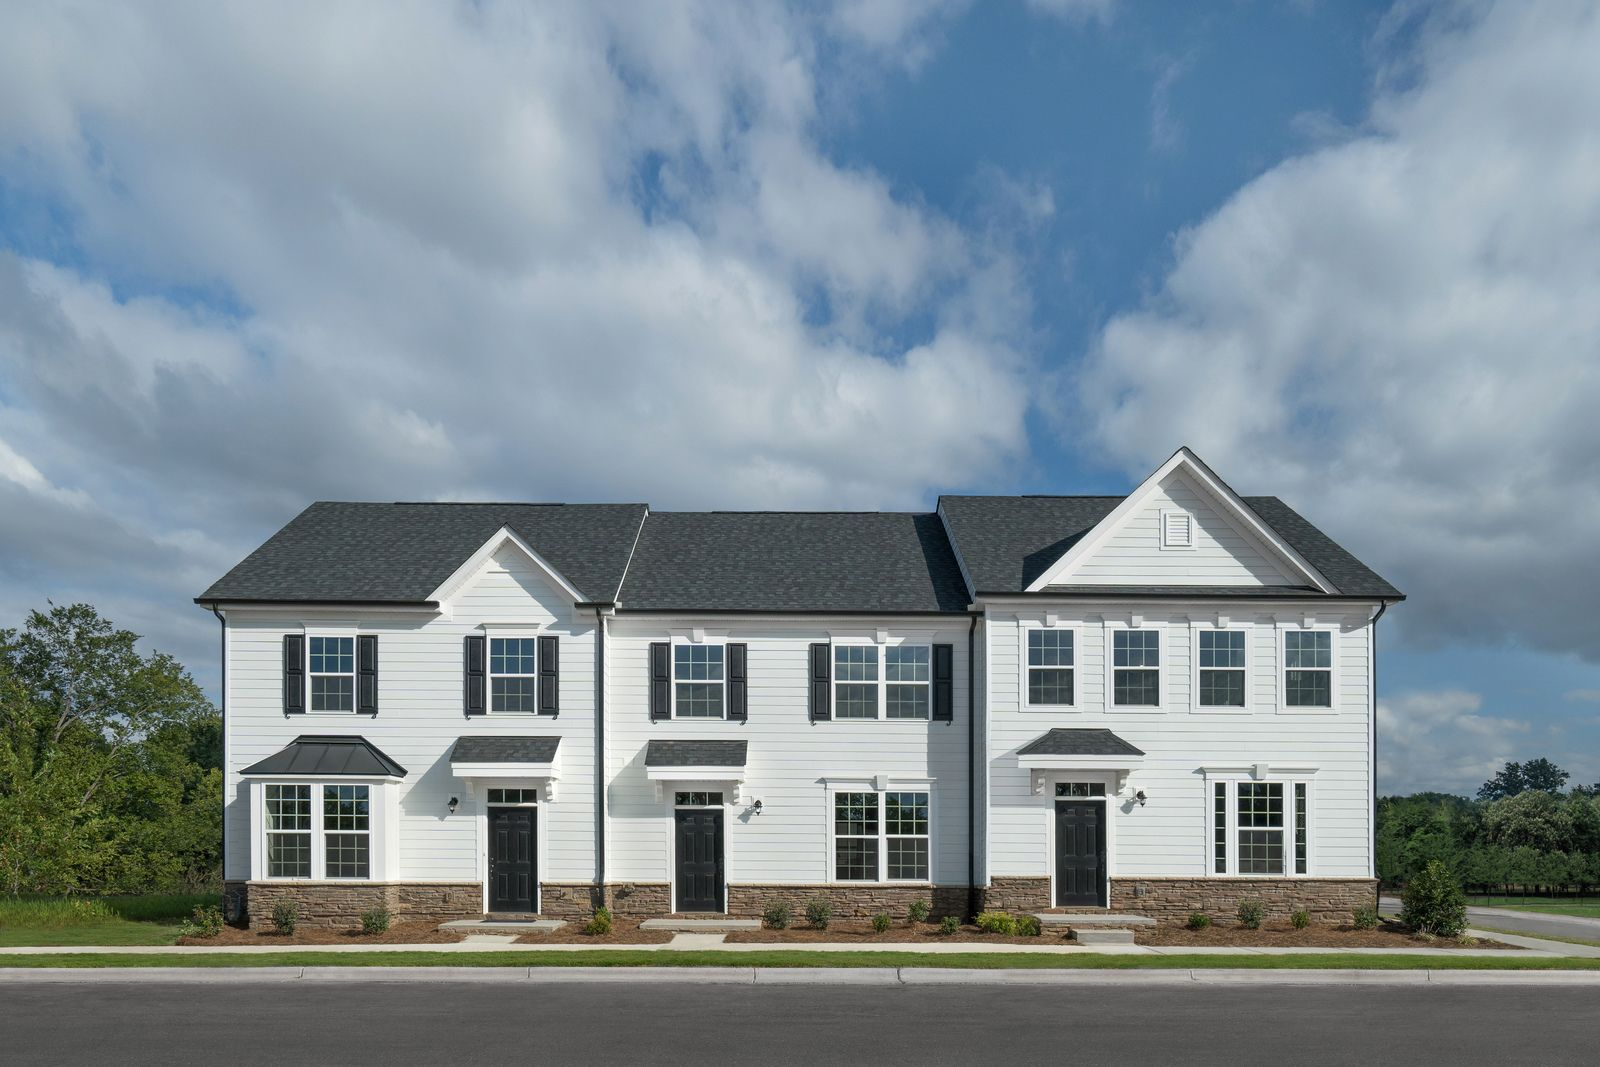 Why rent? Own a new 3 bedroom townhome with a fenced-in yard and 2 car garage